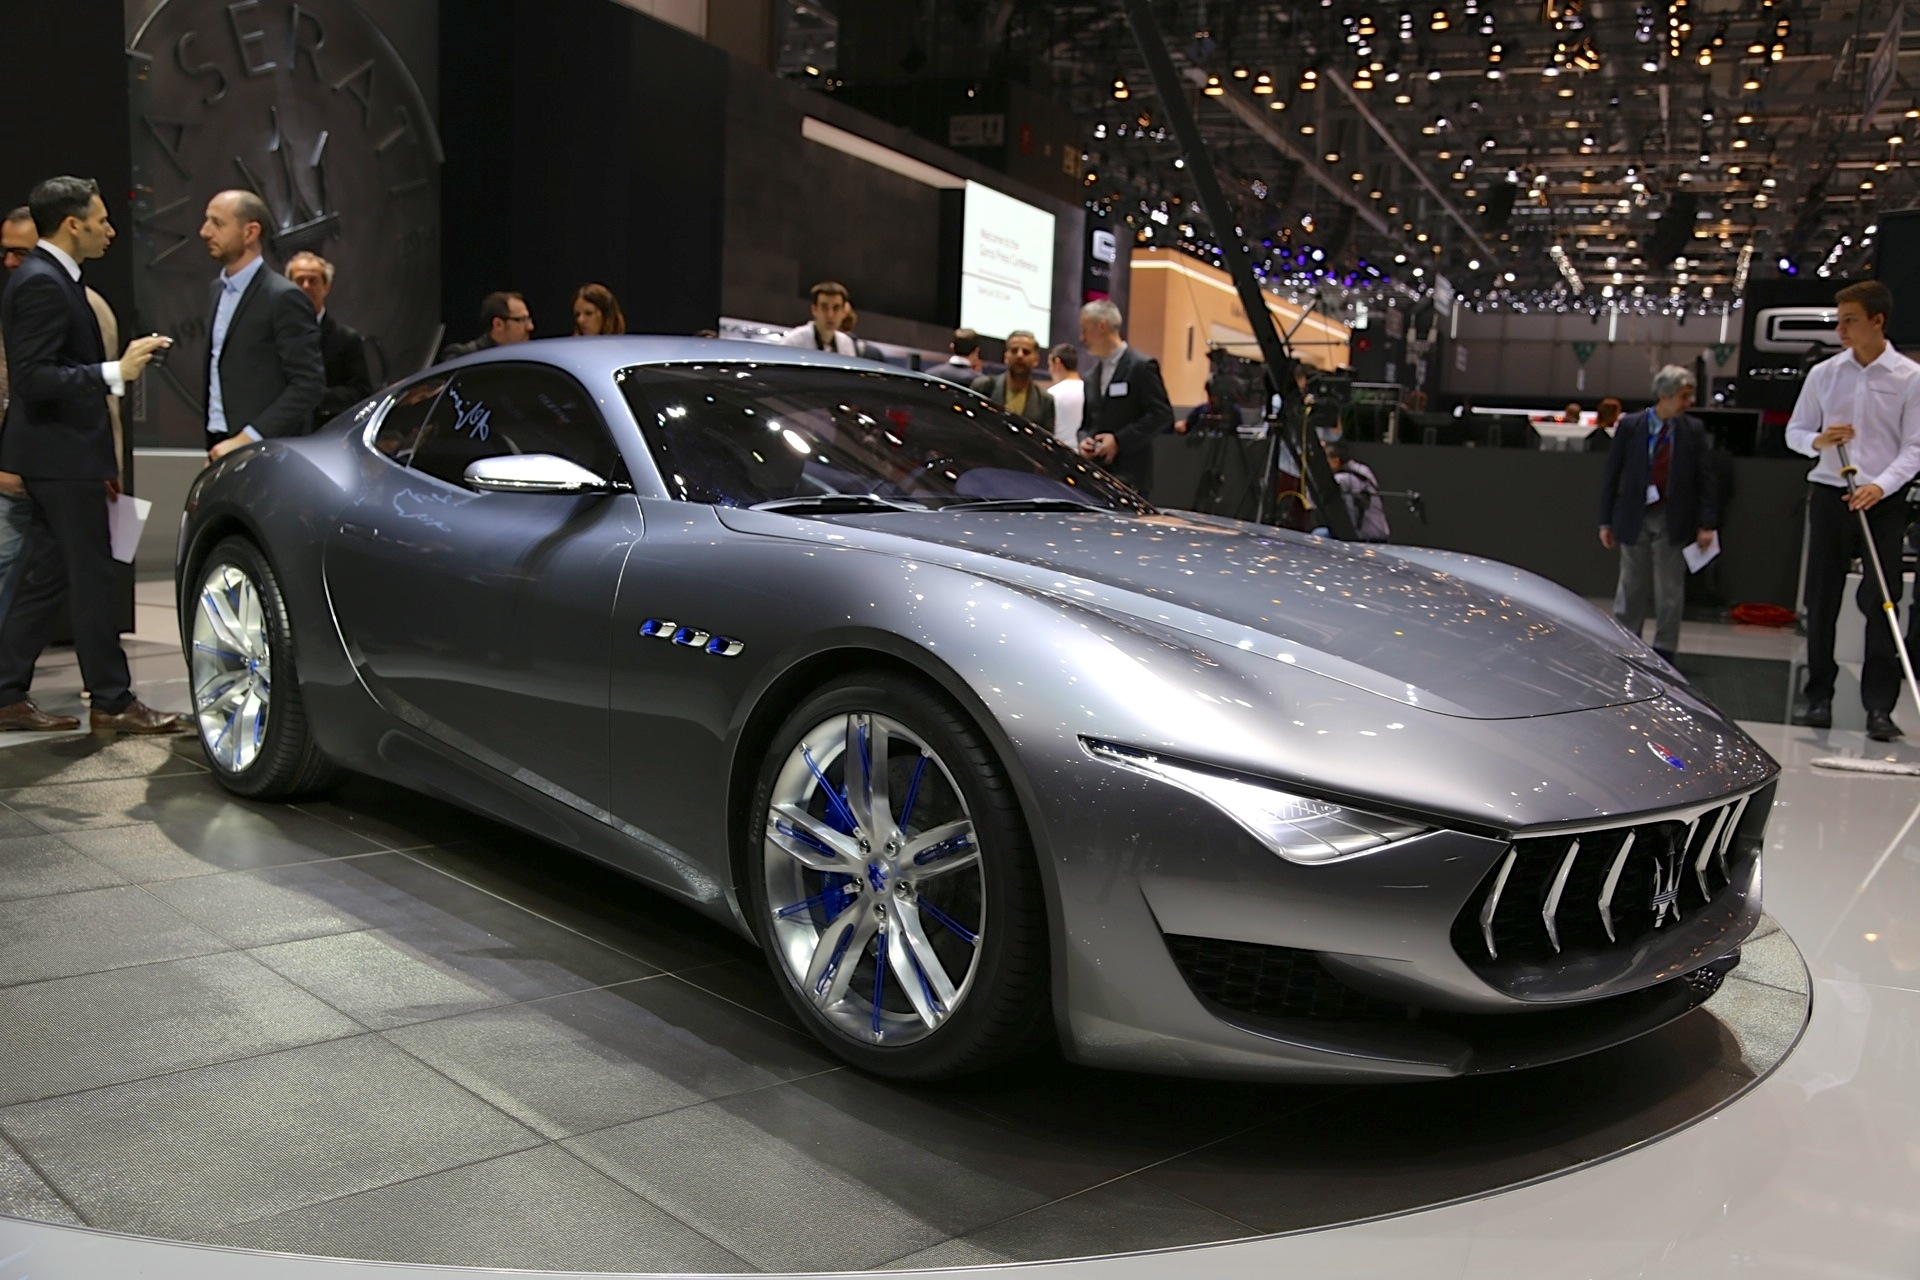 Slowing China Causes Fca To Rethink Plans For Alfa Romeo Maserati Report